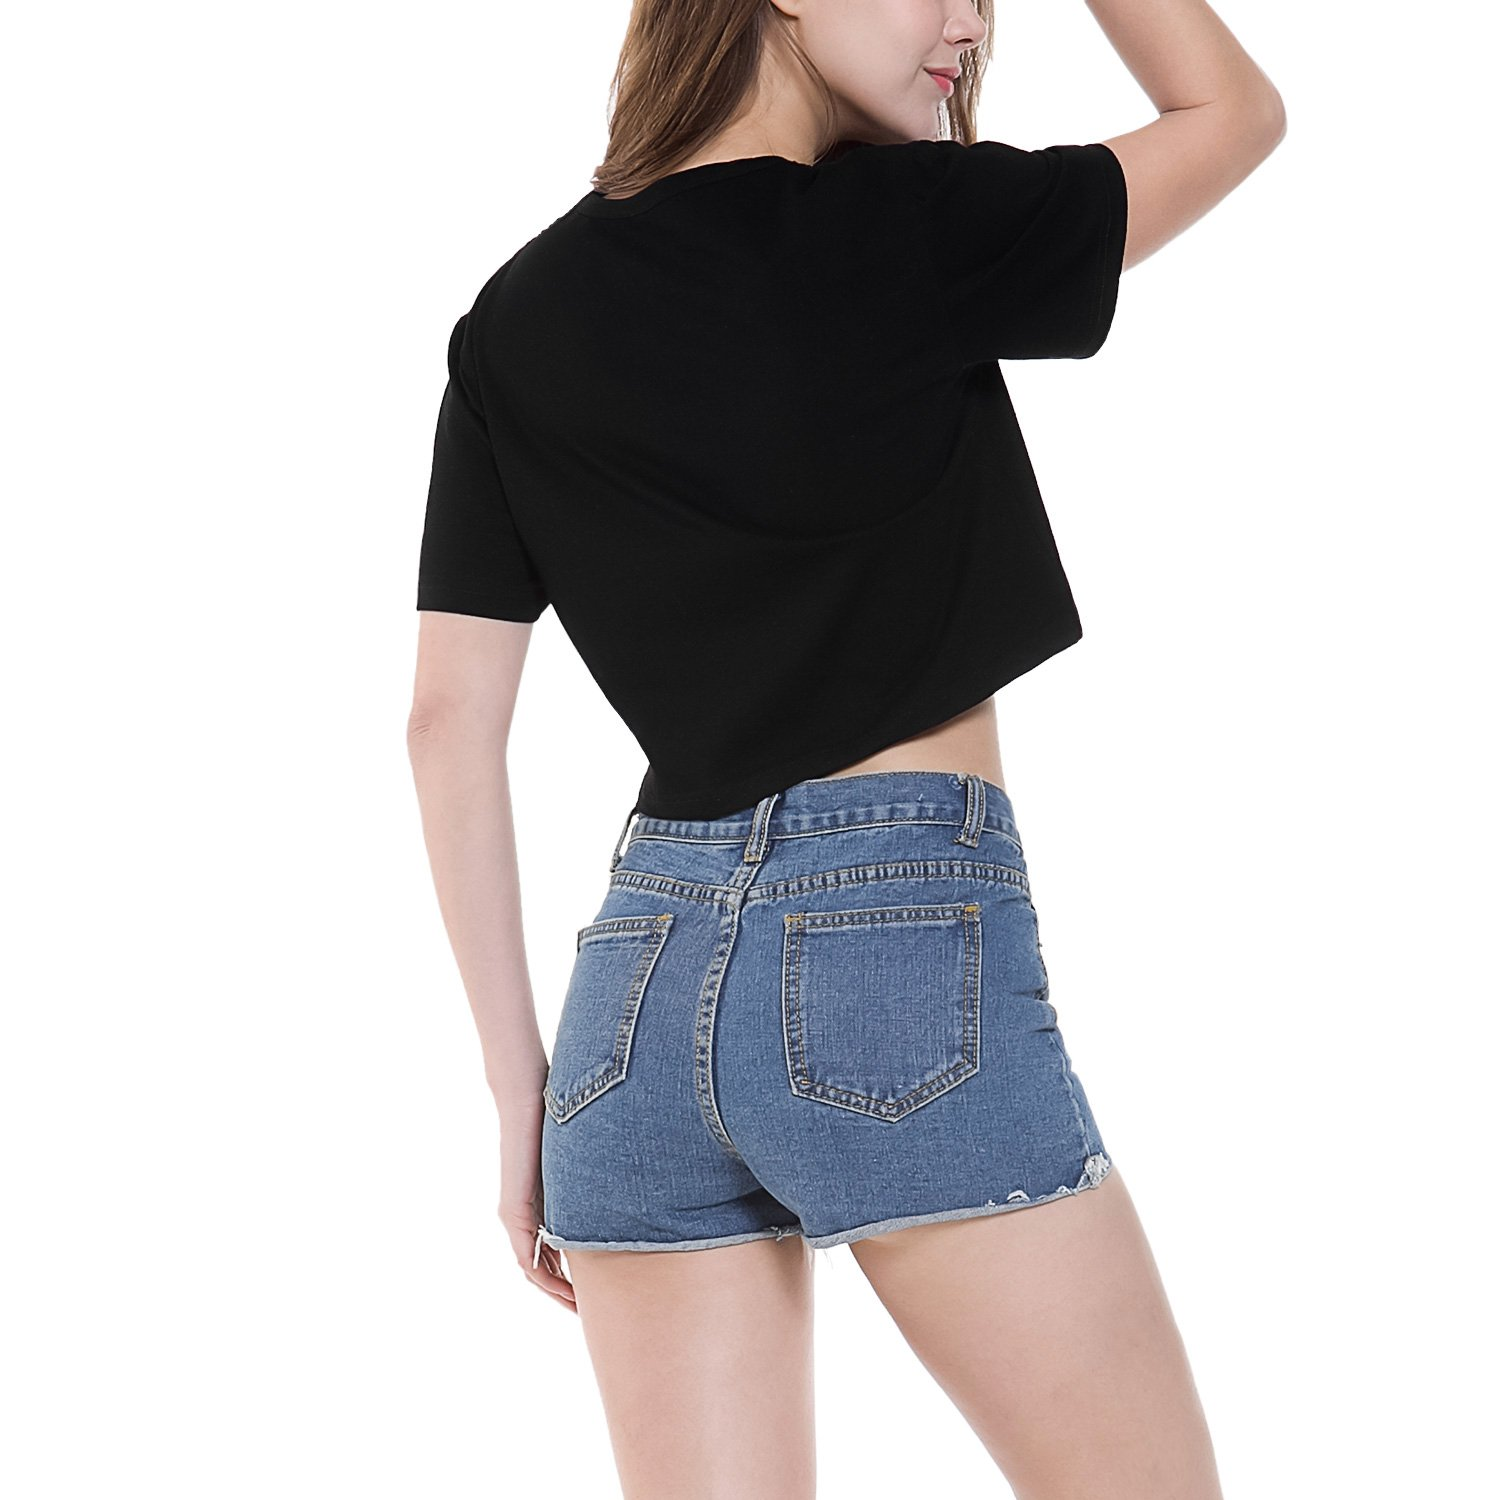 short sleeve crop tops for women Black Large by Perfashion (Image #2)